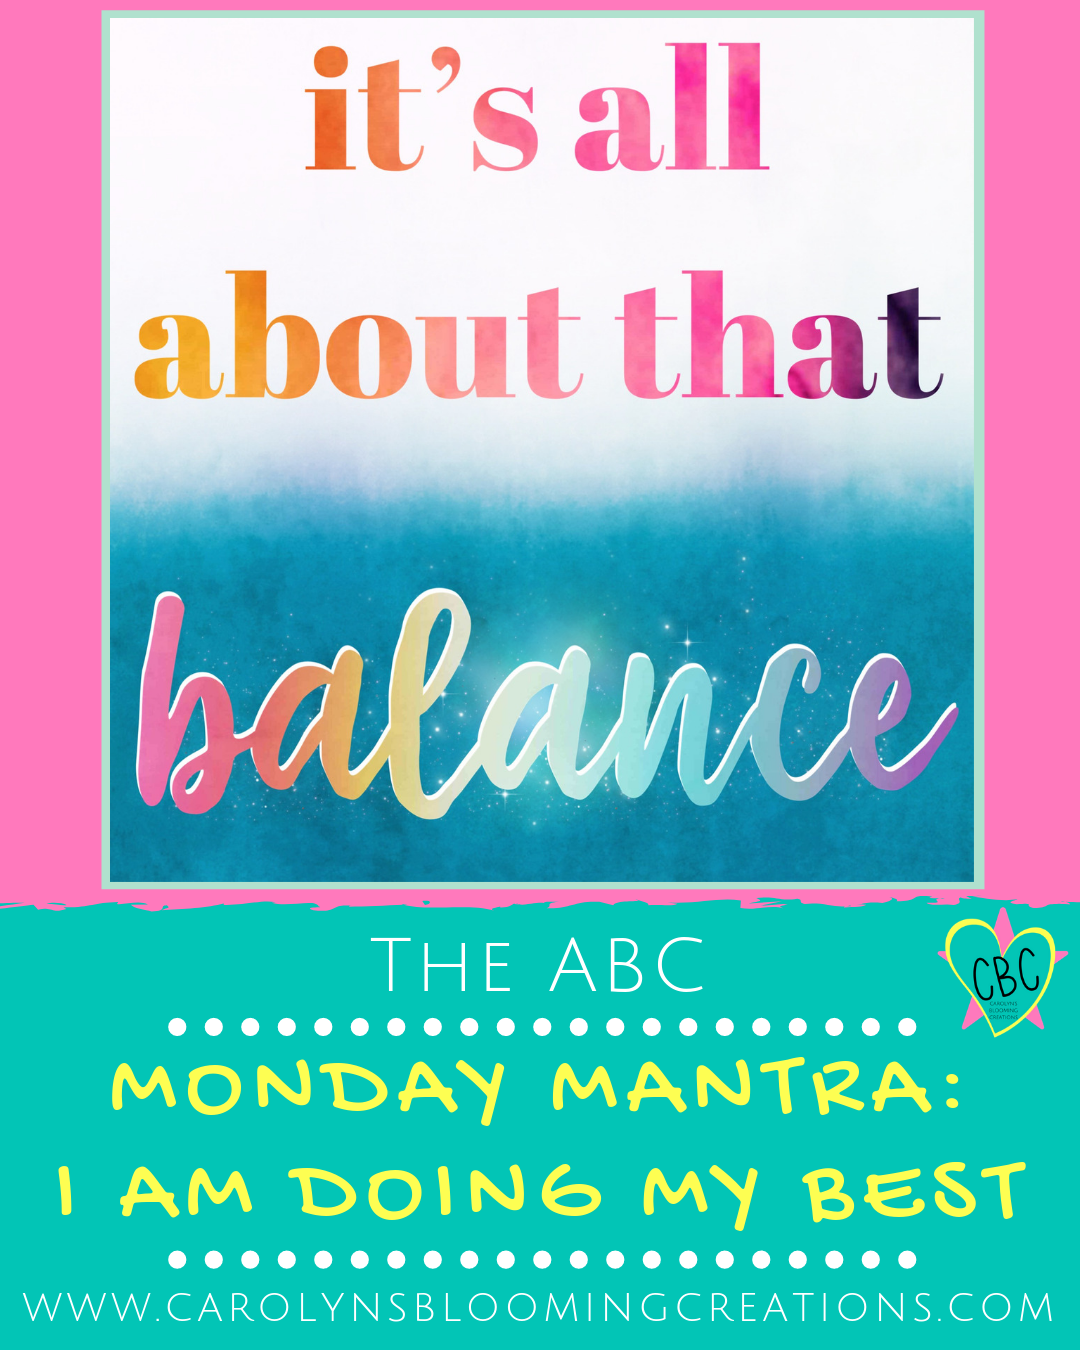 I Am Doing My Best: THE ABC  Pin me! www.carolynsbloomingcreations.com